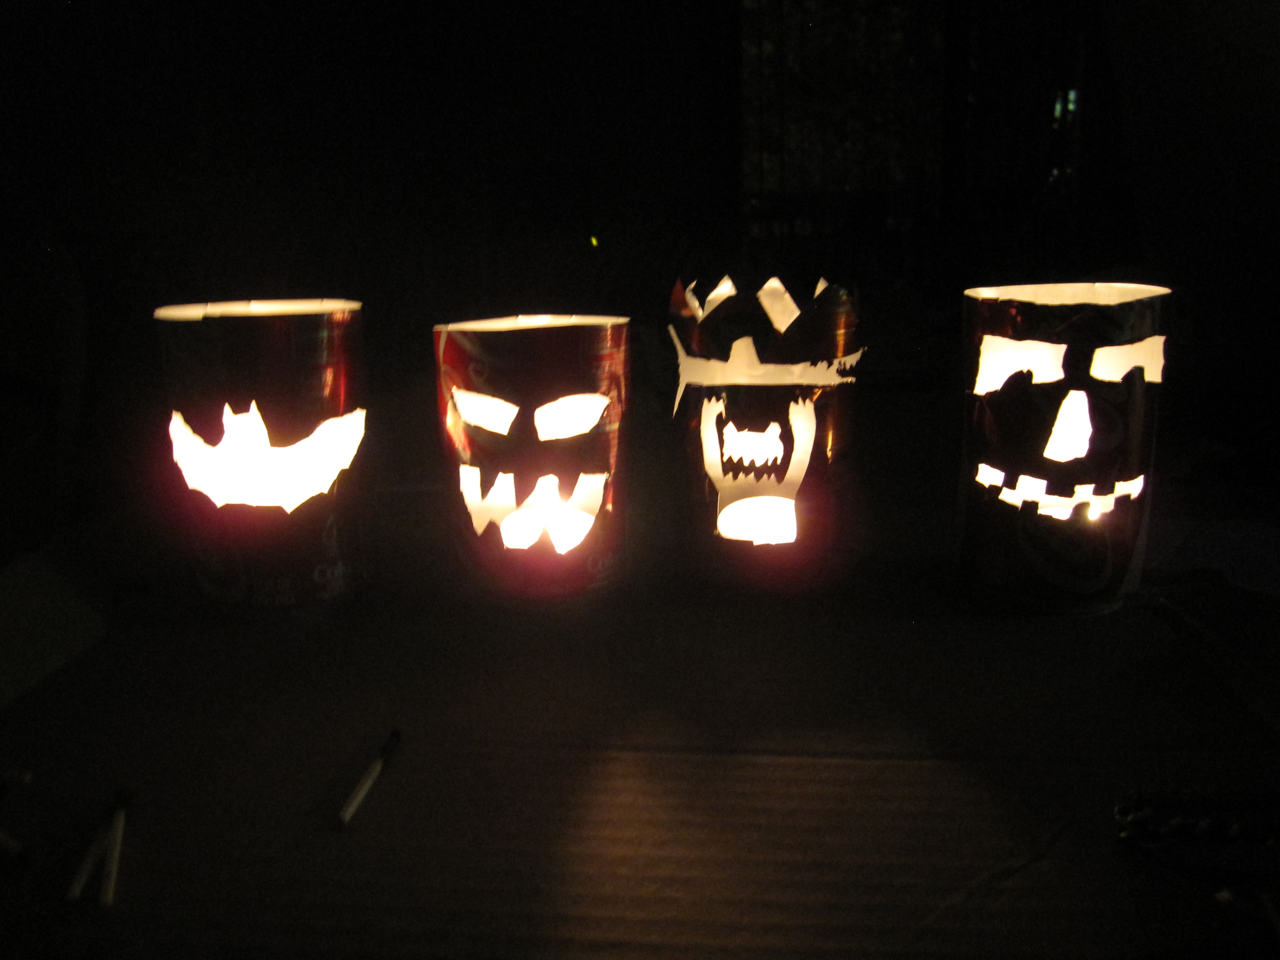 Picture of Pumpcans (Pop Can Jack-O-Lanterns)